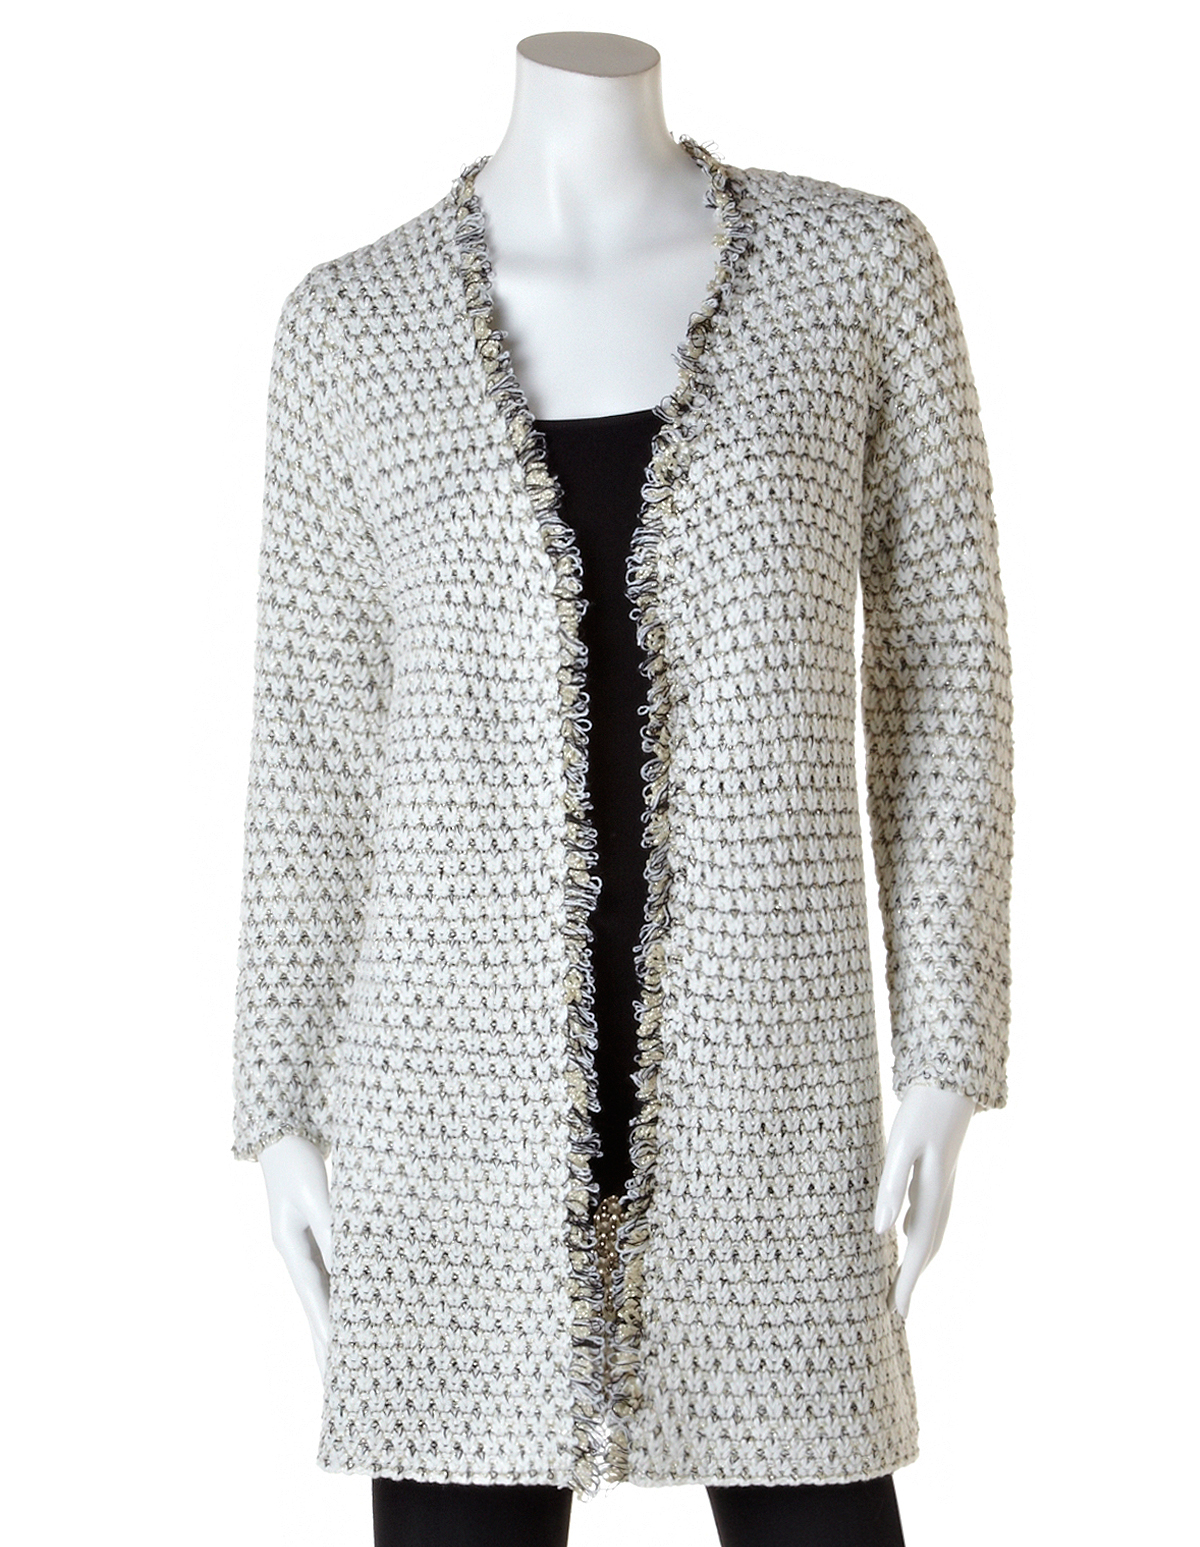 08544fc51b7d Gold Lurex Sparkle Knit Cardigan